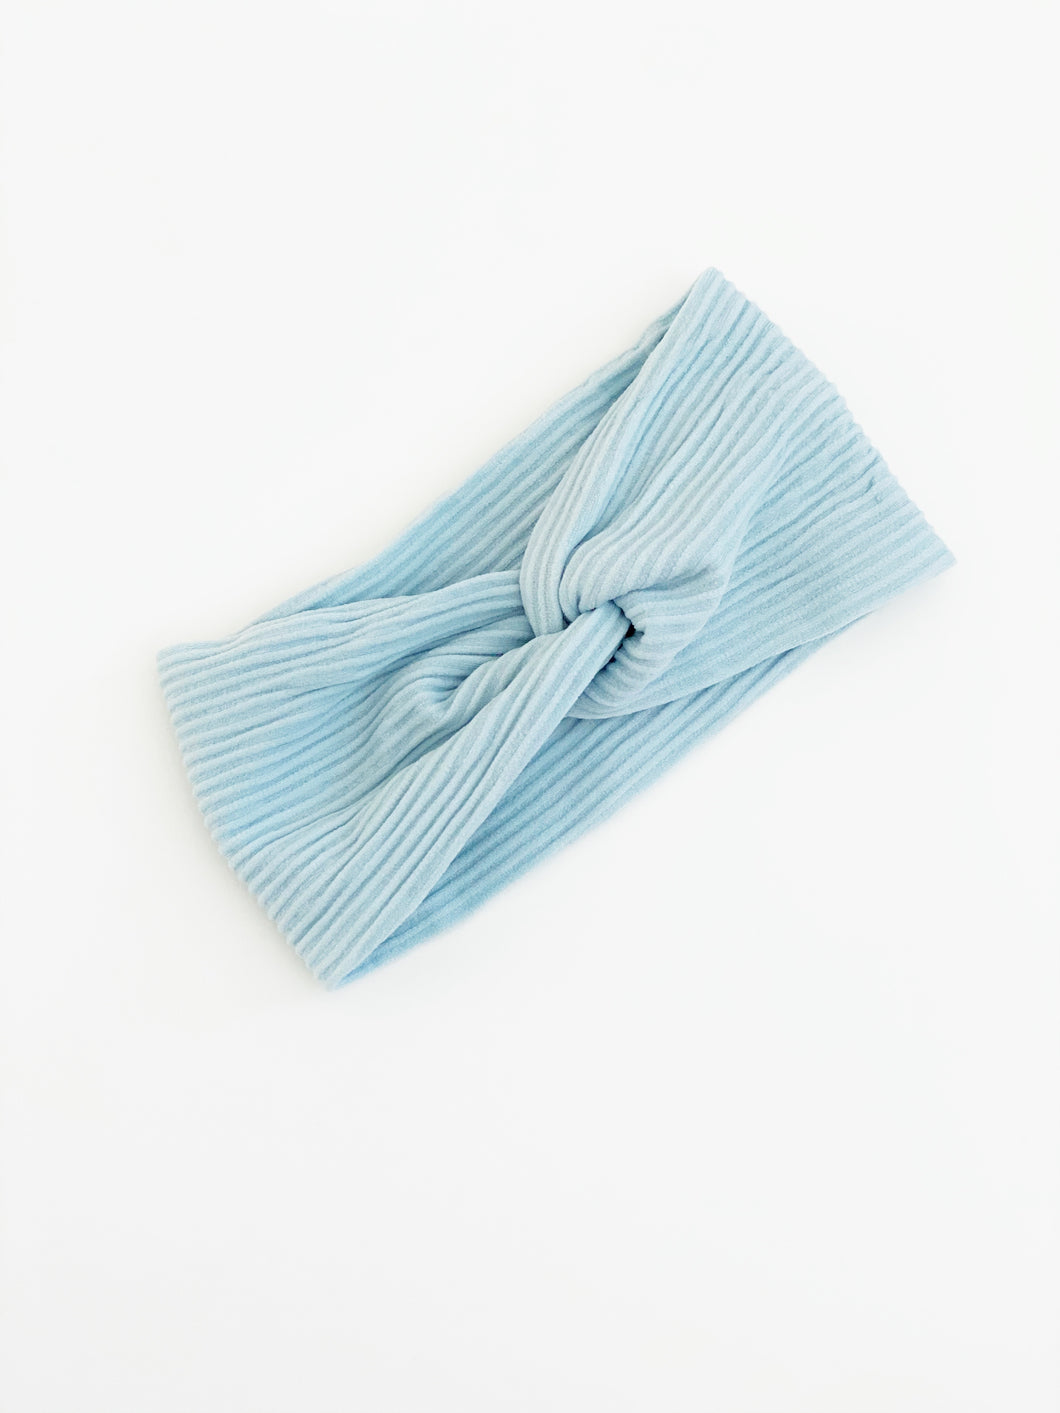 Rib Knit Twist Wrap | Cornflower | Small